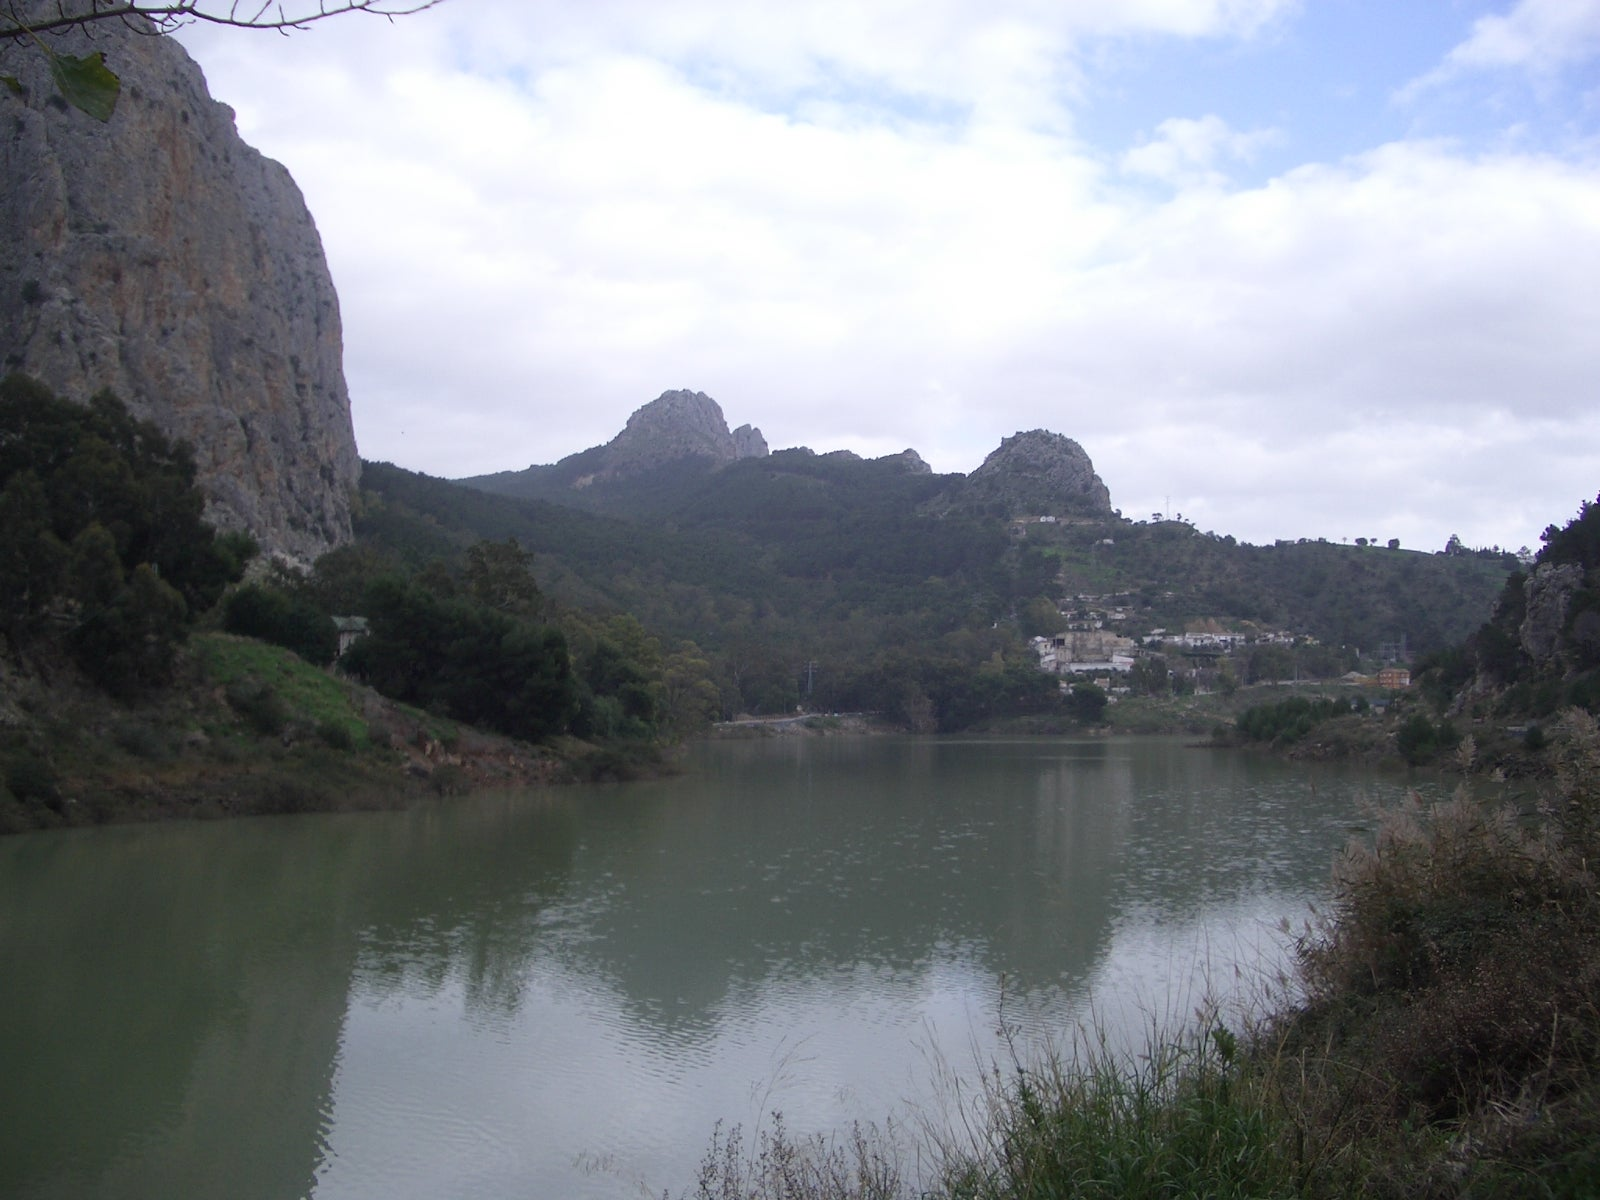 Parc Naturel El Chorro